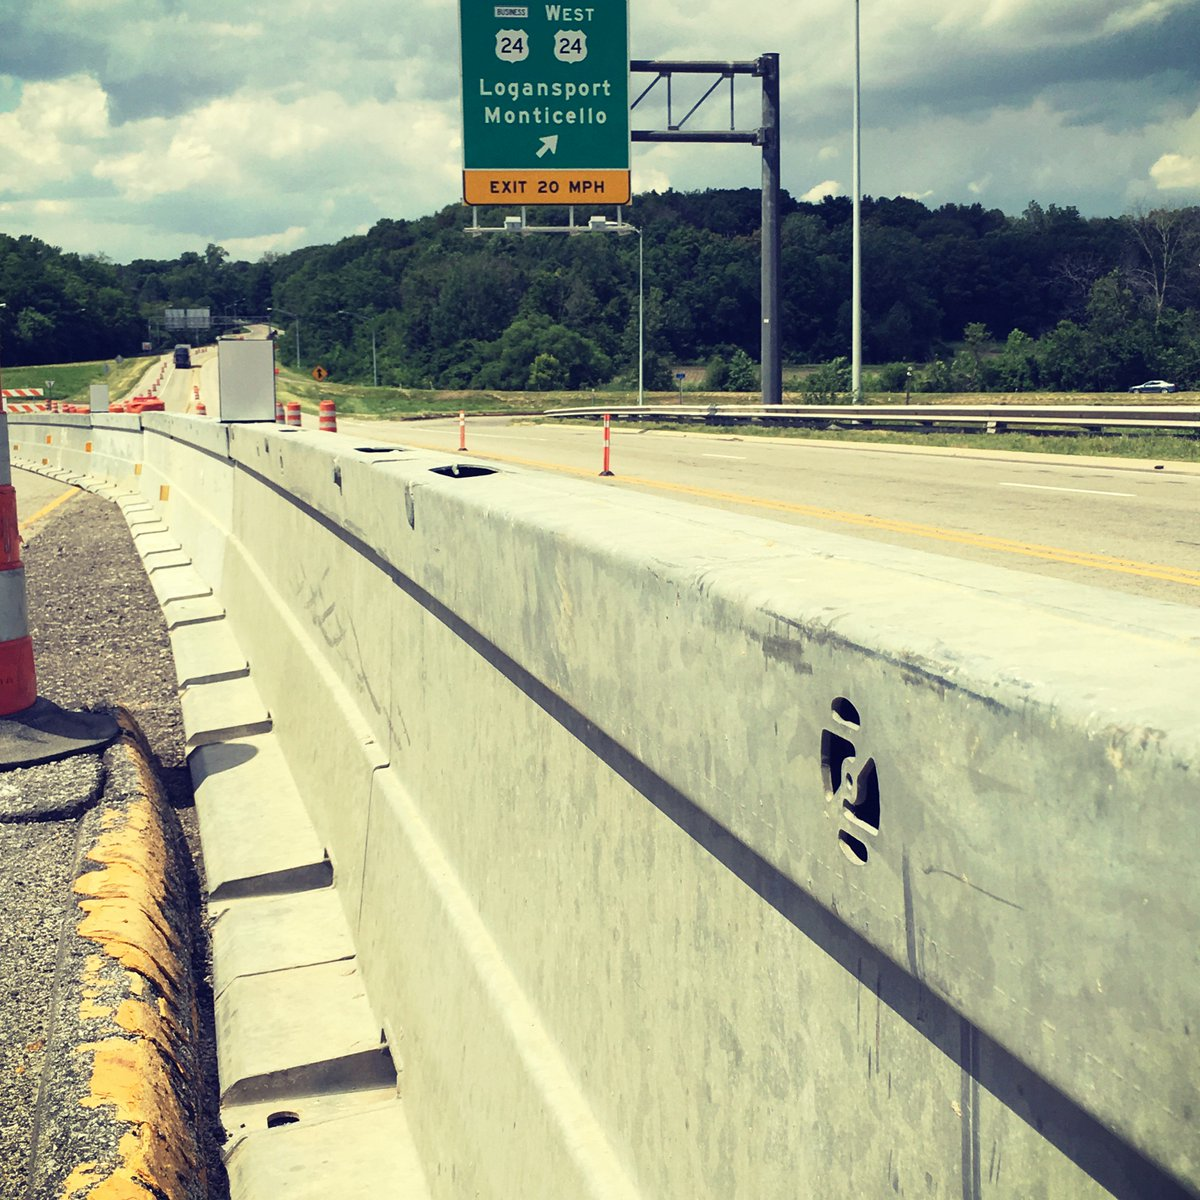 Protecting those who rebuild our #infrastructure   On US 24 in Logansport, Indiana #Zoneguard #PositiveProtection pic.twitter.com/OfFIZI7nAC